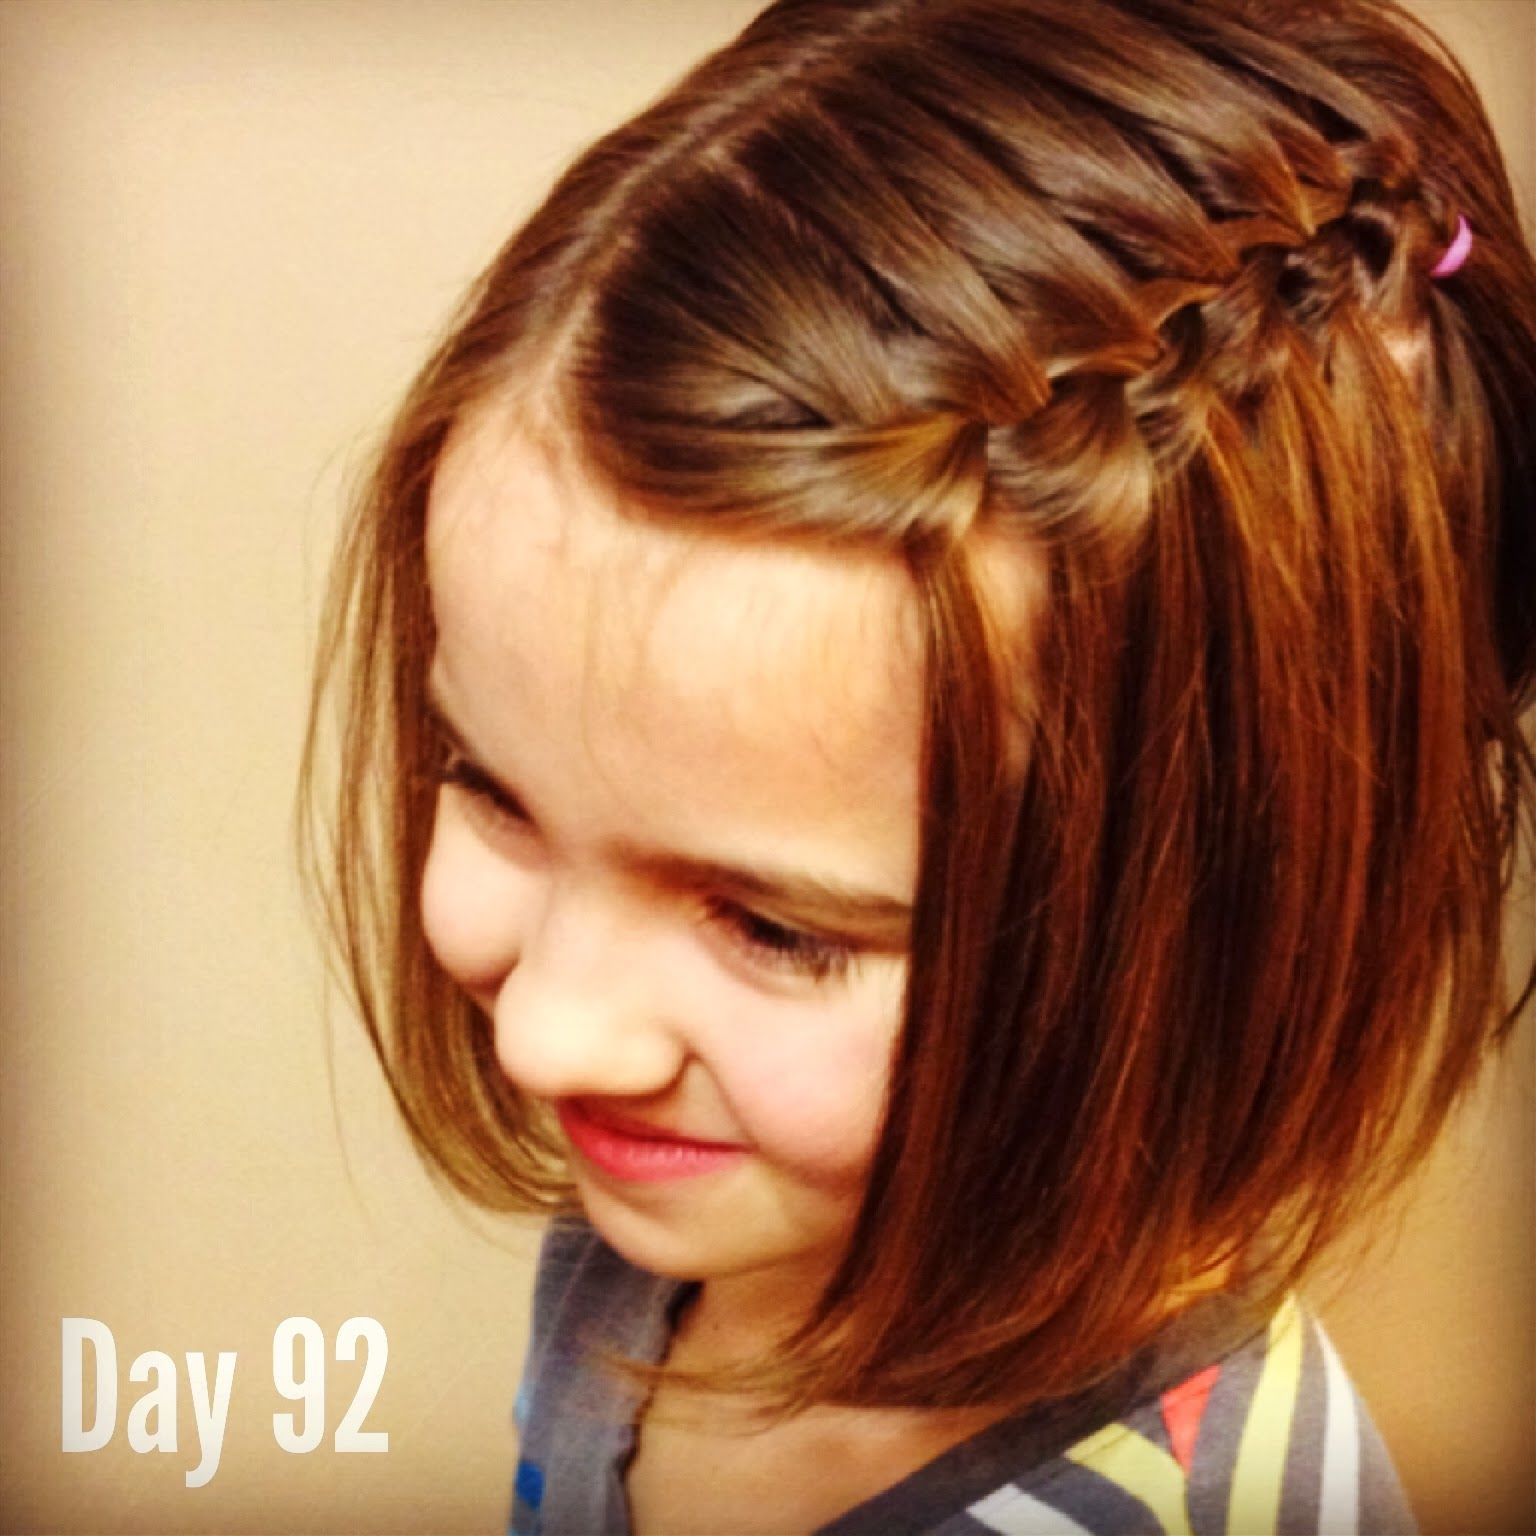 Girly do hairstyles by jenn week girlydosdaysofhair